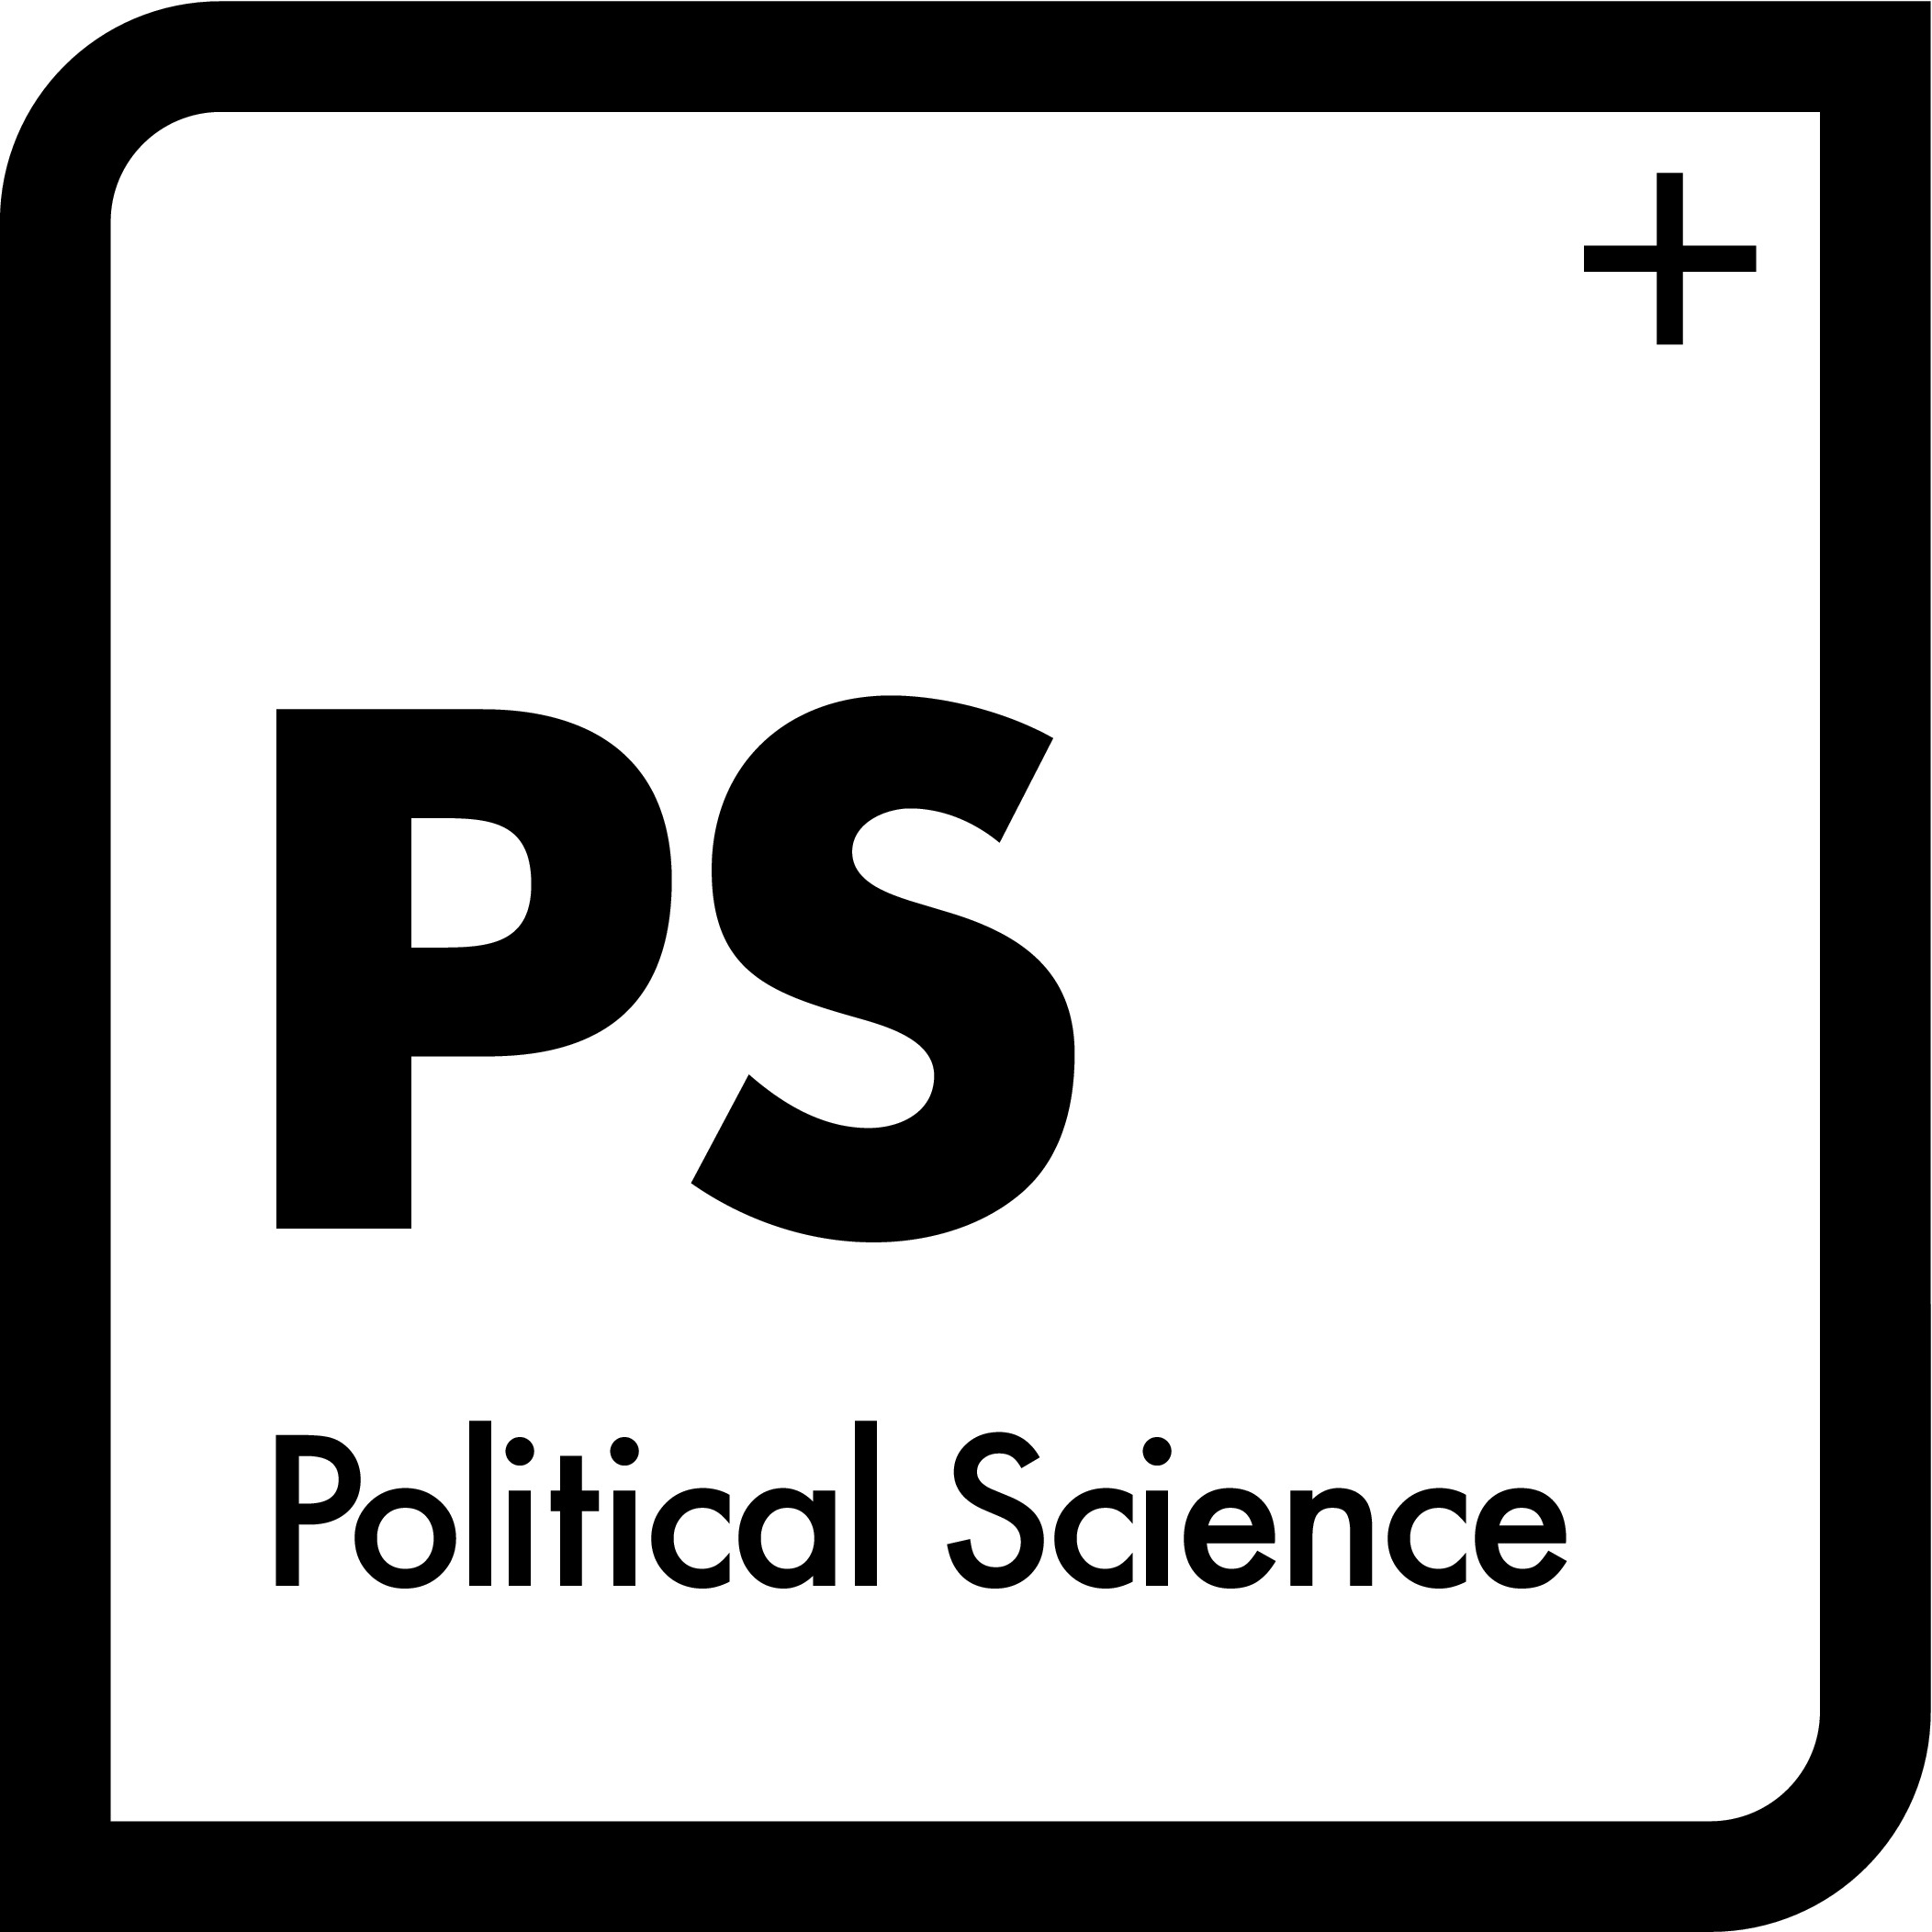 Major political science declare the ps major and career path biocorpaavc Choice Image